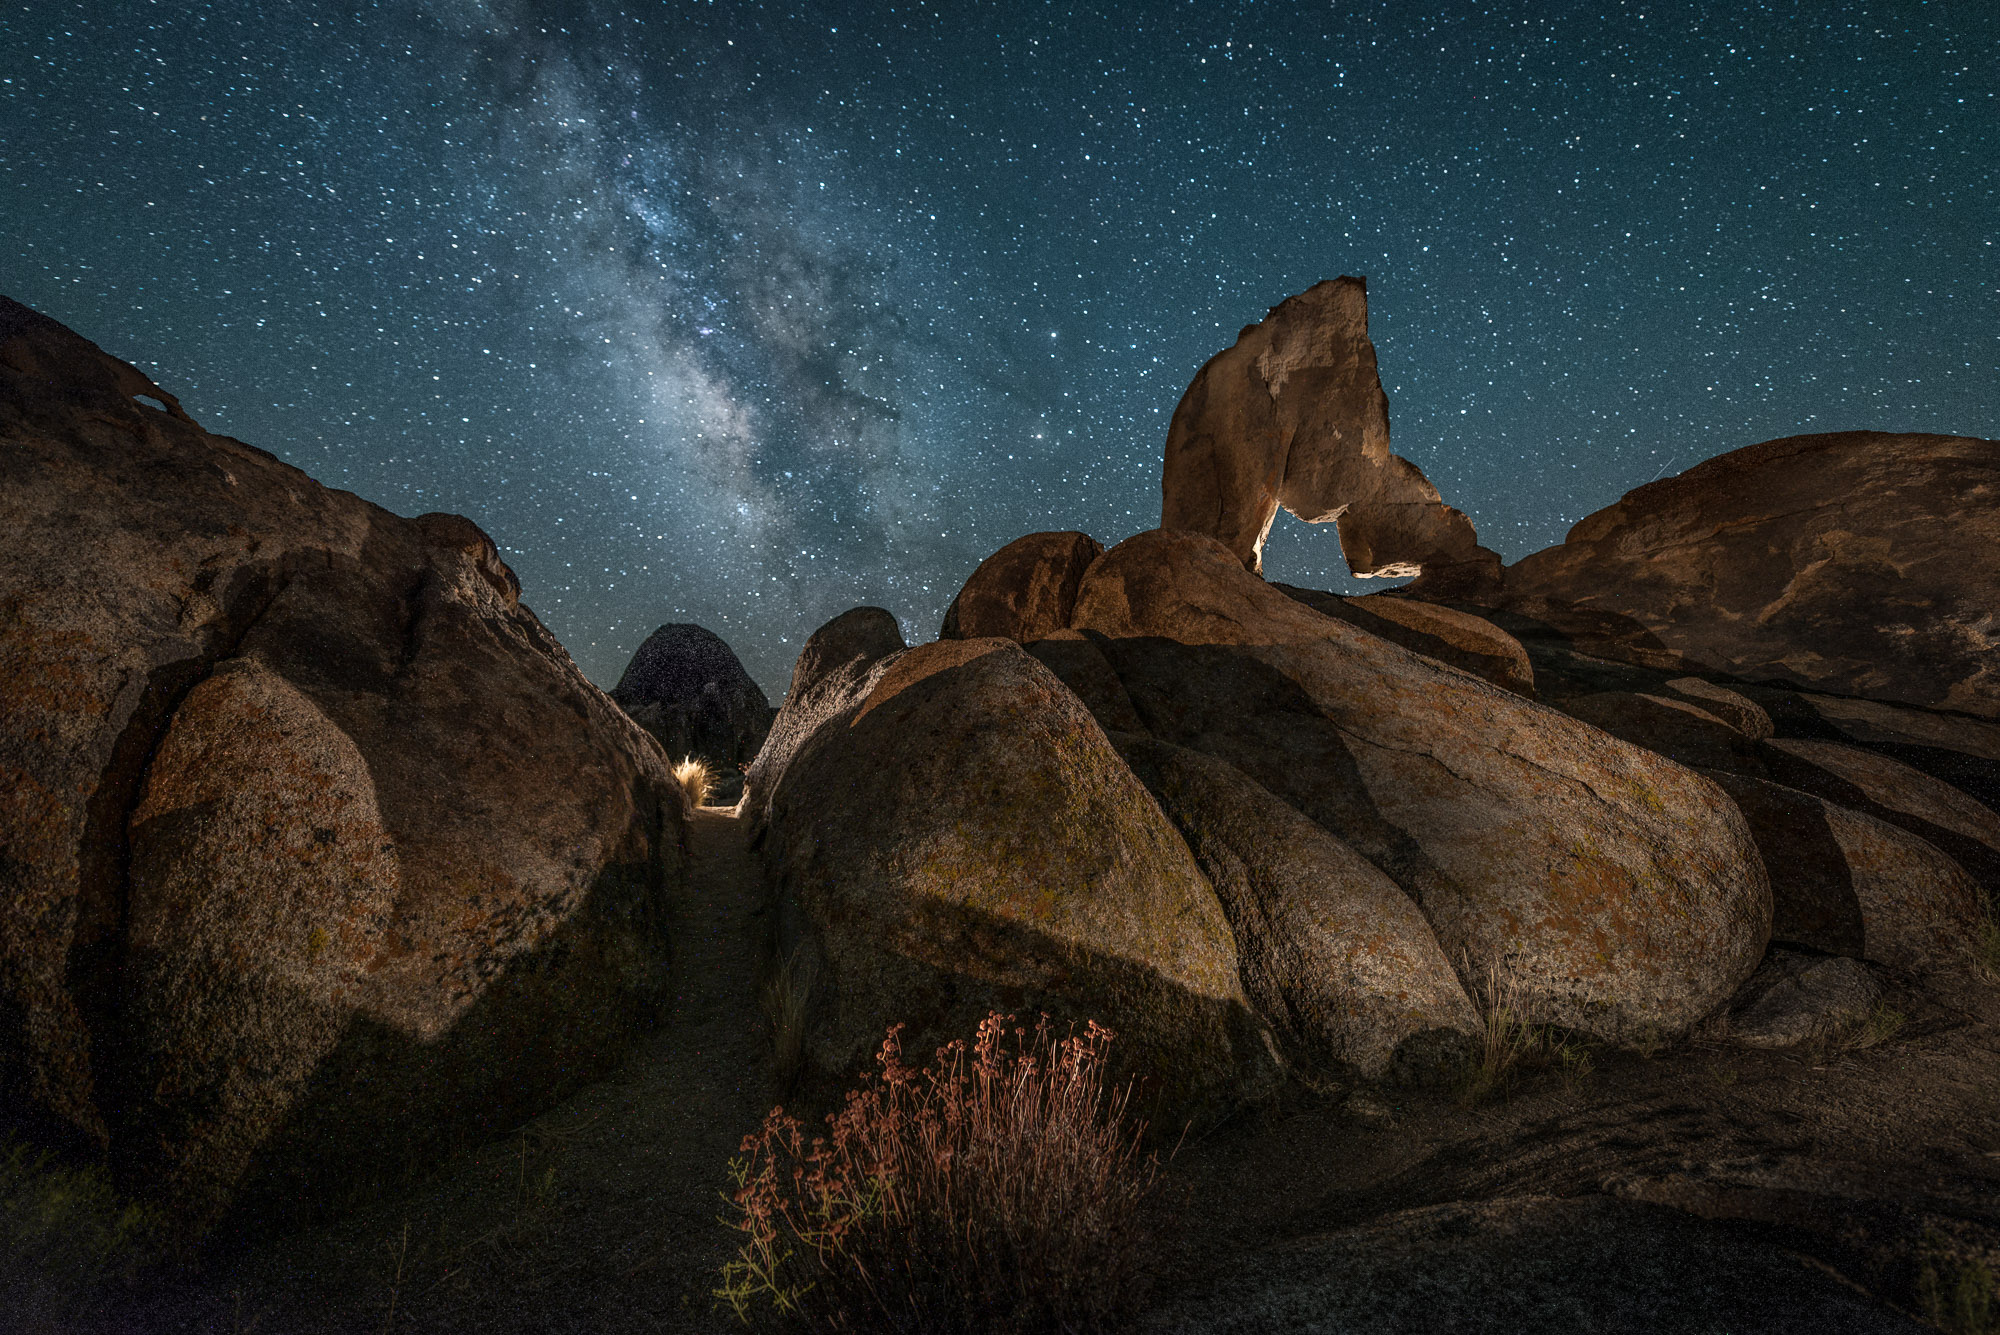 Lady Boot Arch,  Alabama Hills . 15 minutes, f/2.8, ISO 200 for the foreground, combined with 20 seconds, f/2.8, ISO 6400 for the sky, with tea lights and flashlight.